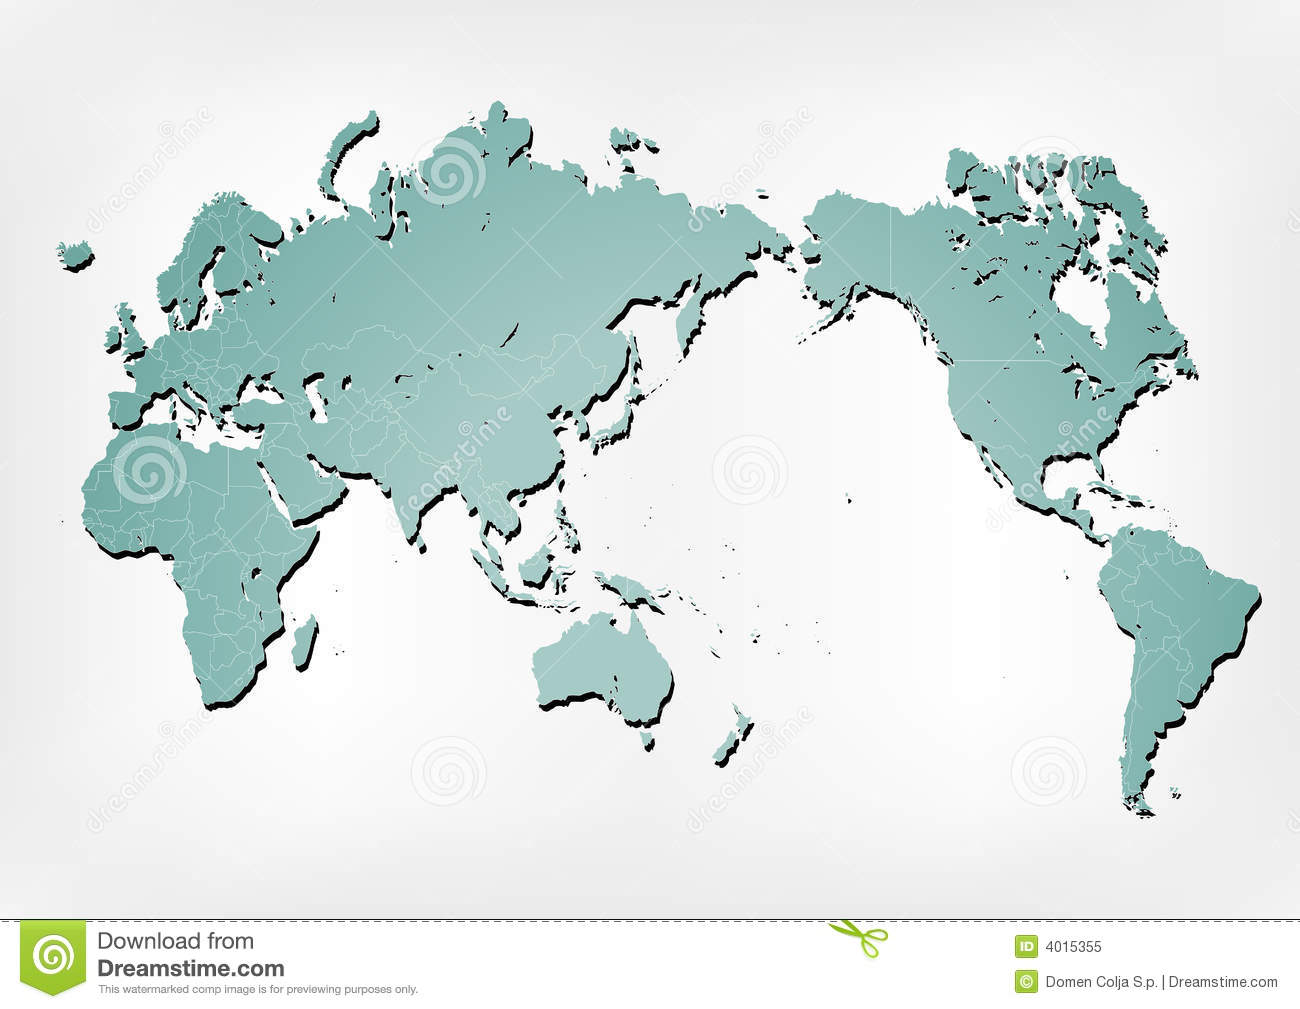 World map illustration with shadows stock vector illustration of world map illustration with shadows royalty free stock photo gumiabroncs Gallery